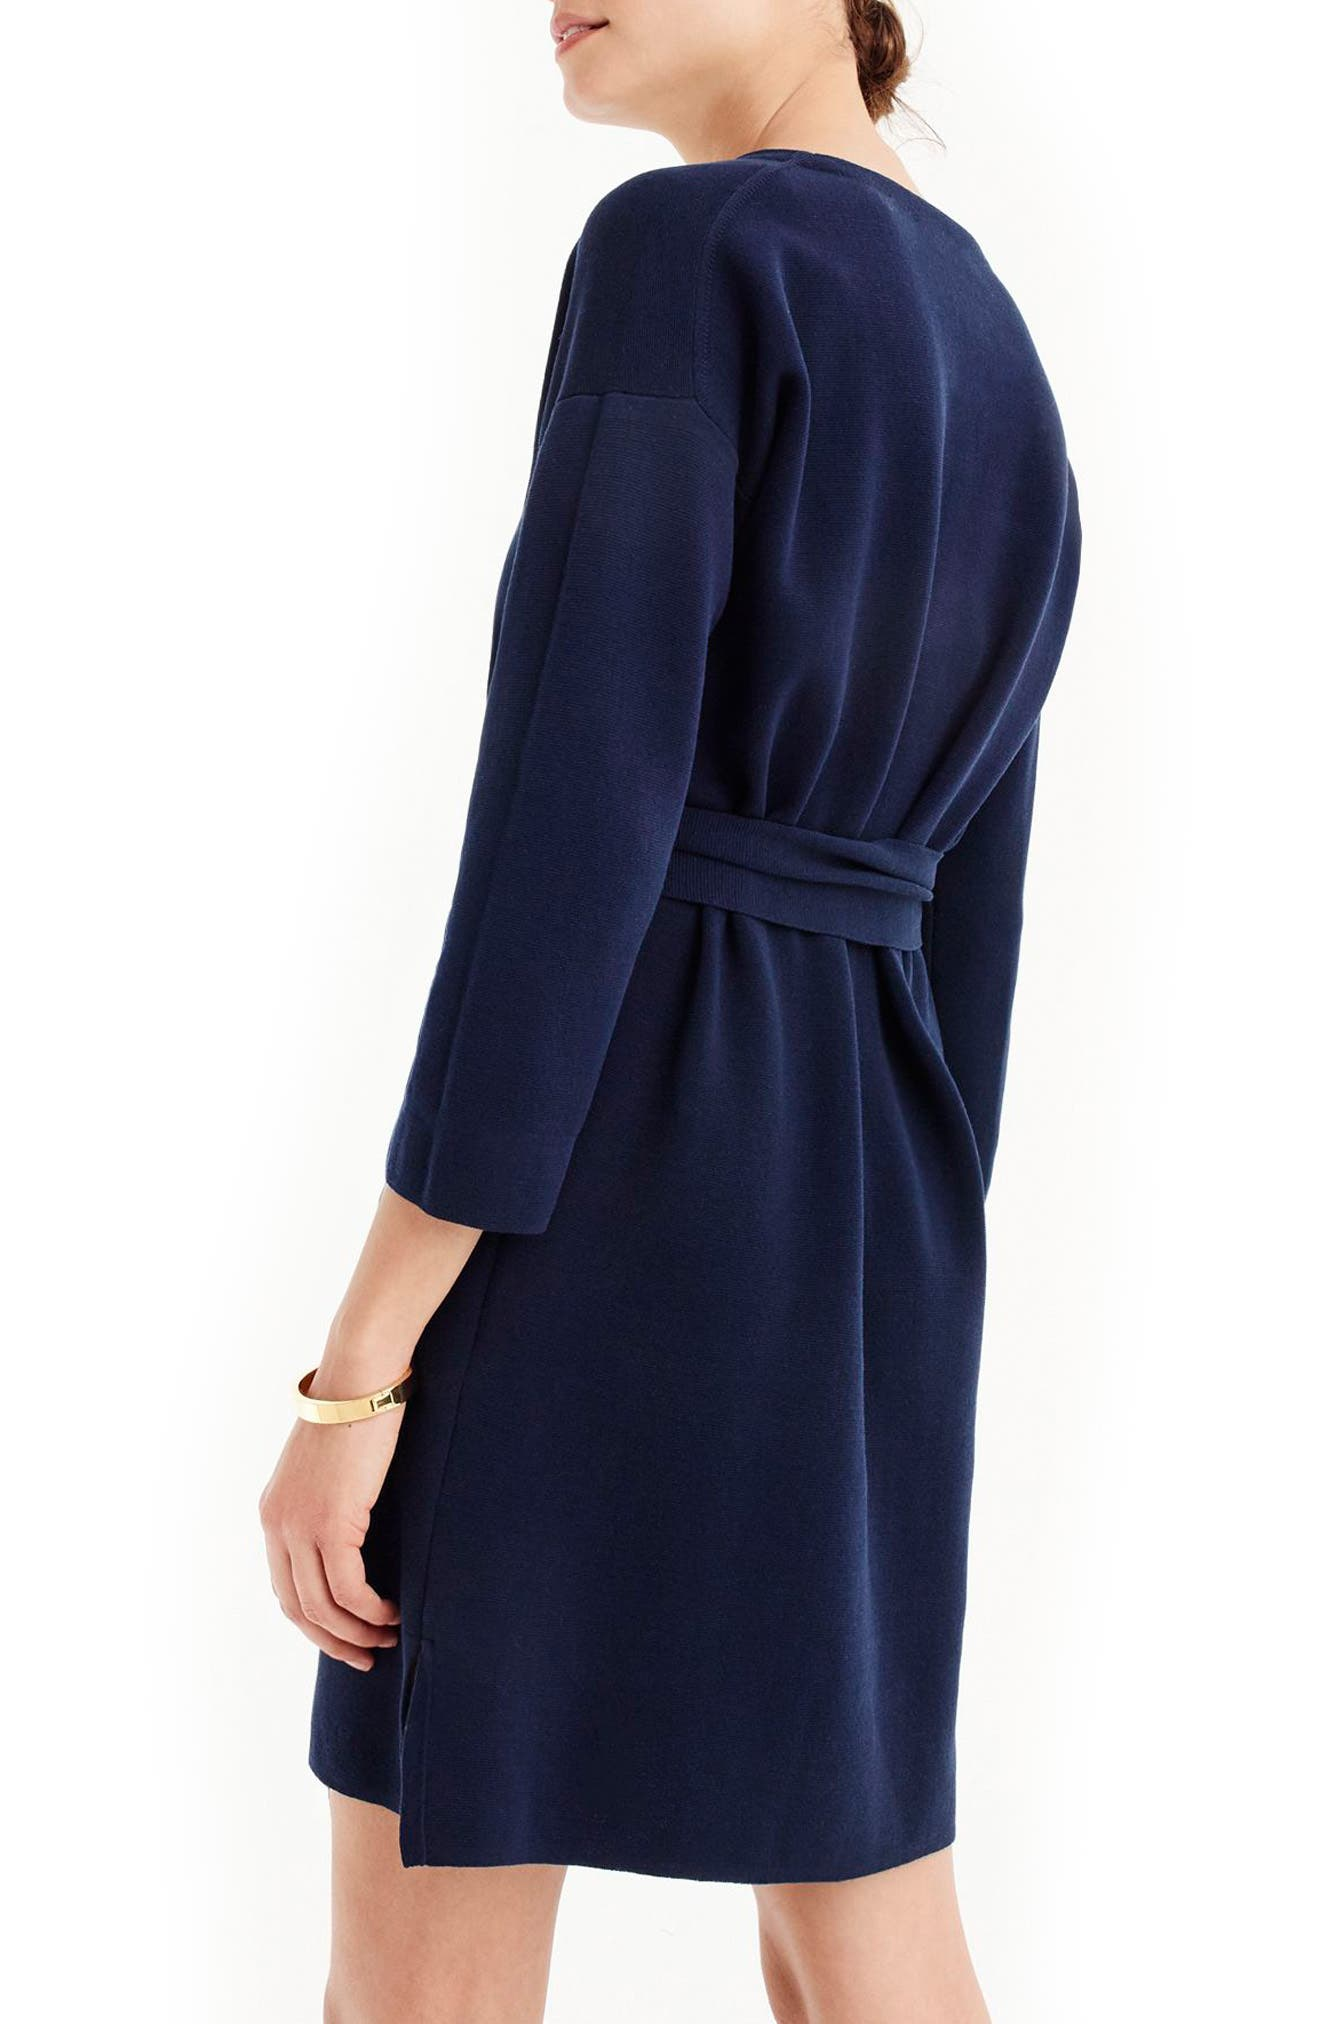 J.Crew Tie Waist Knit Dress,                             Alternate thumbnail 2, color,                             Indigo Sea